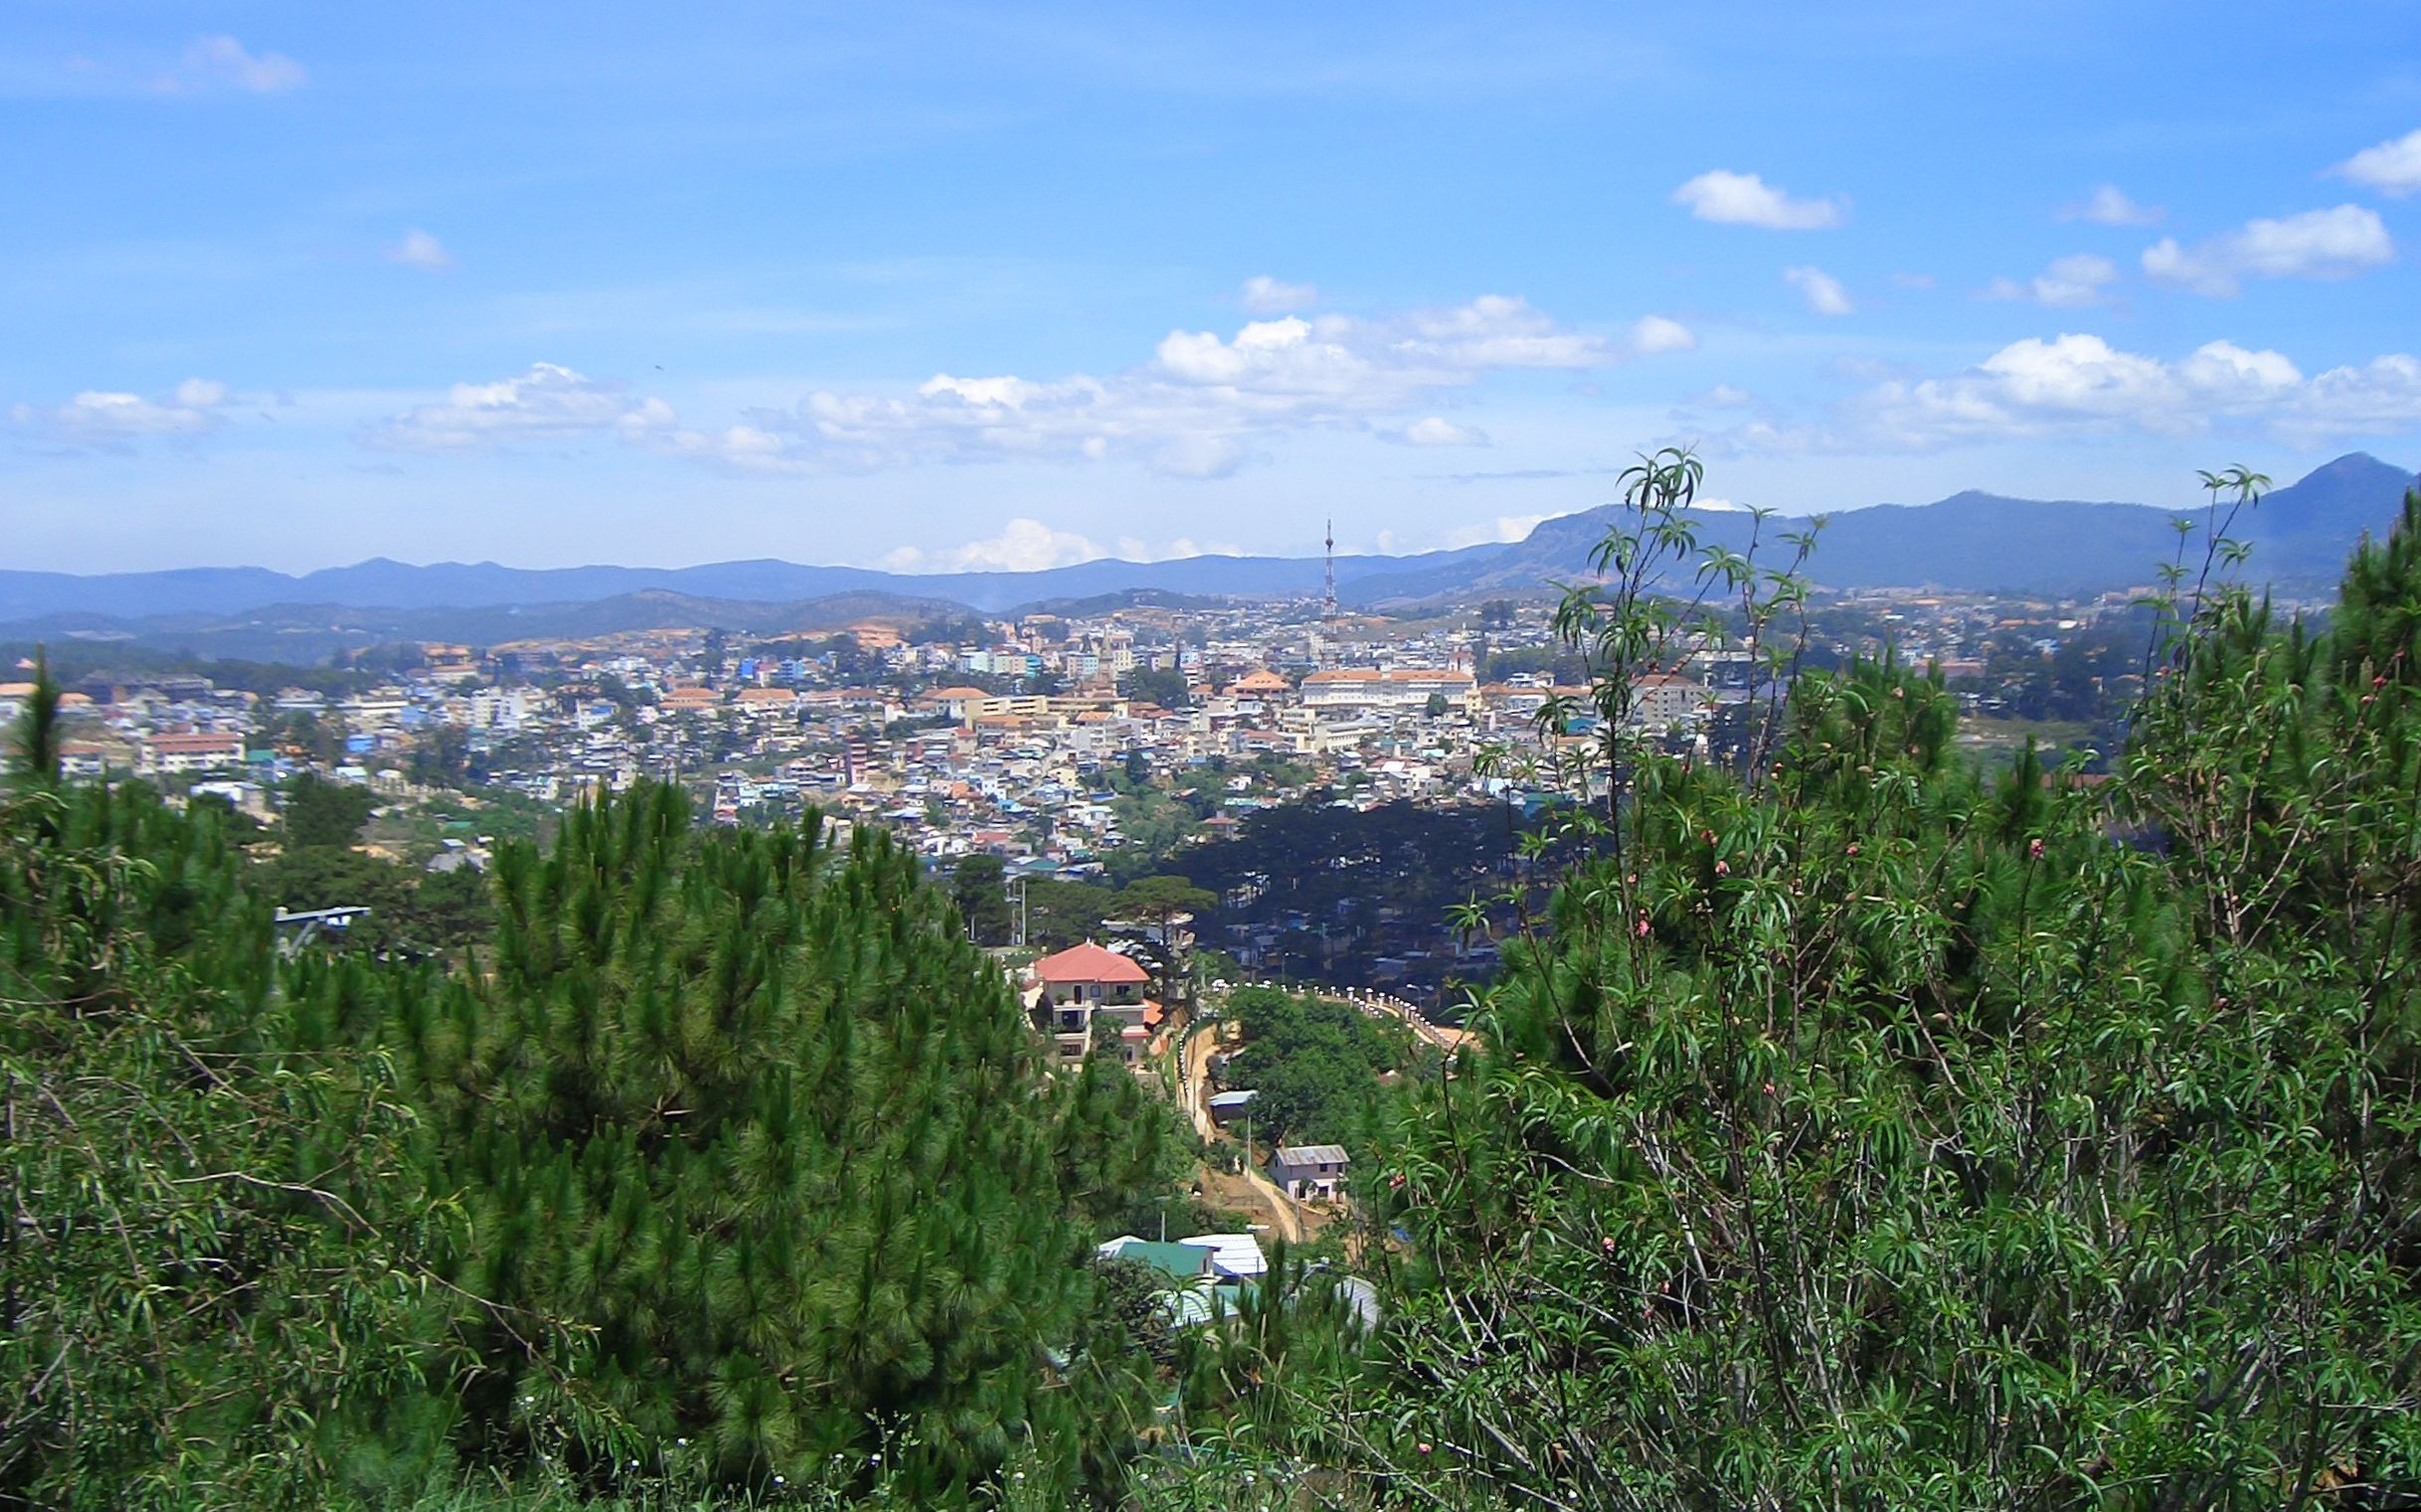 Dalat Vietnam  city photo : 475 Vietnam Aussicht auf Dalat Wikipedia, the free ...